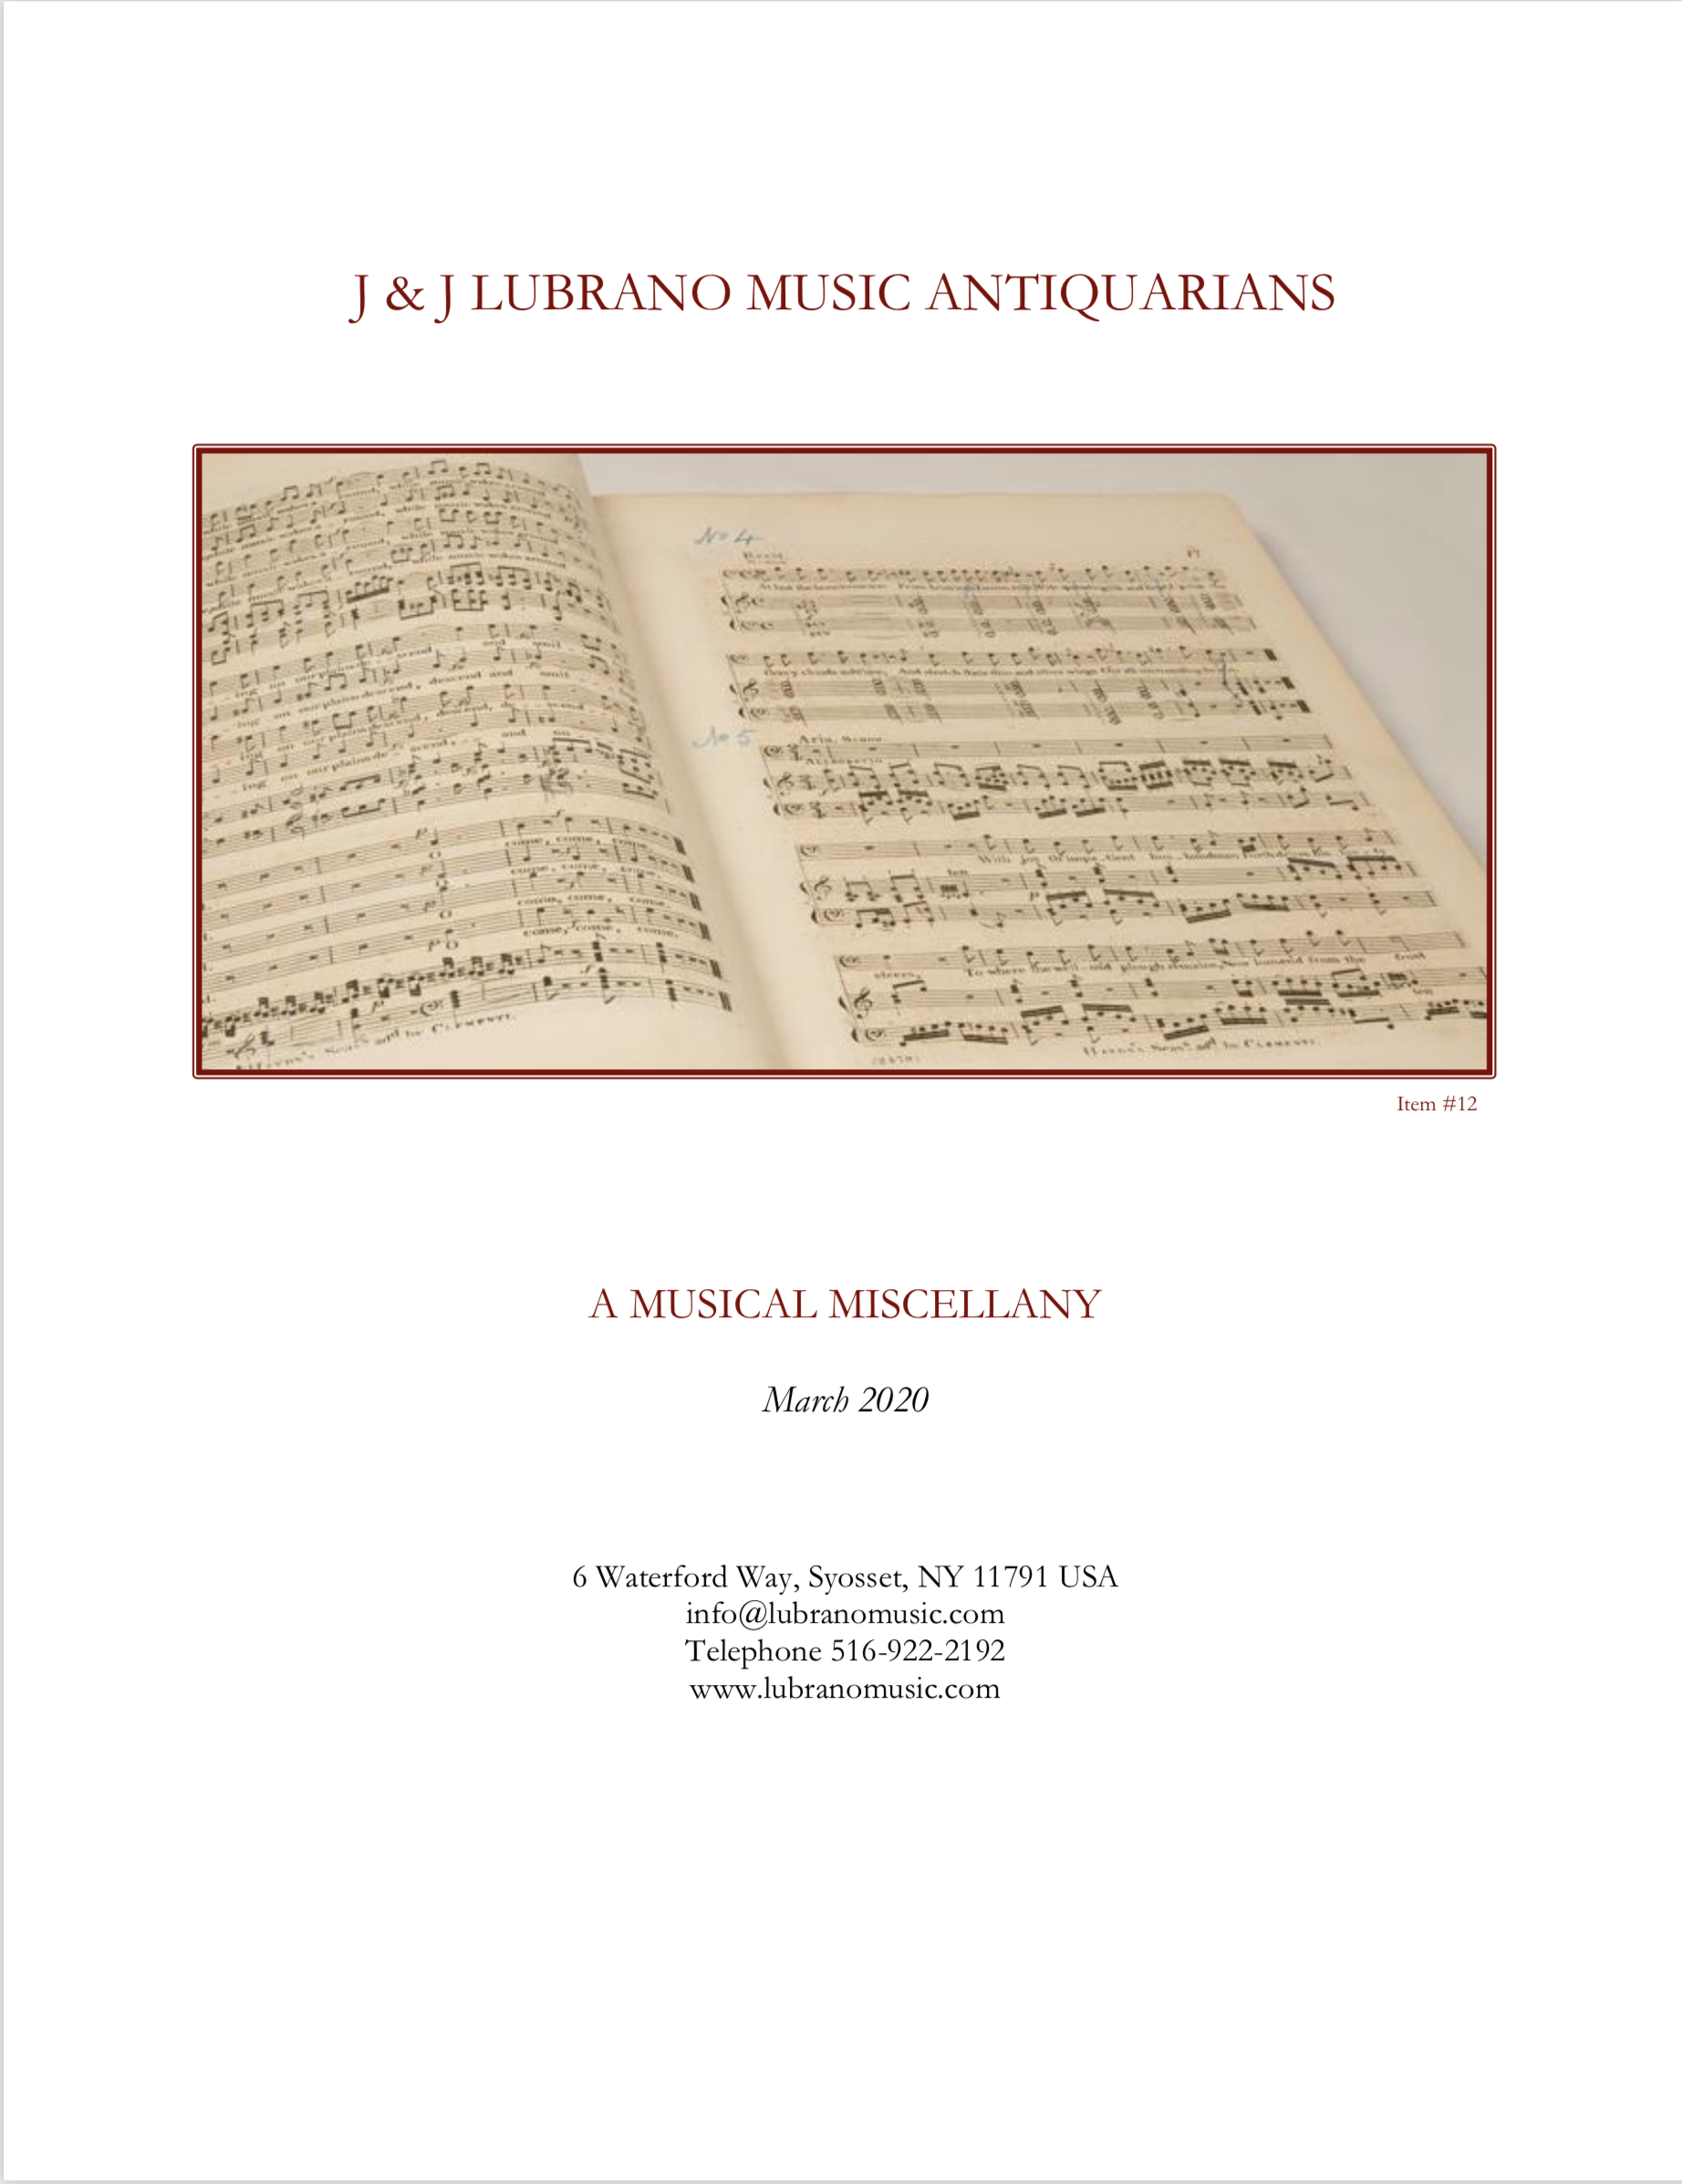 A Musical Miscellany